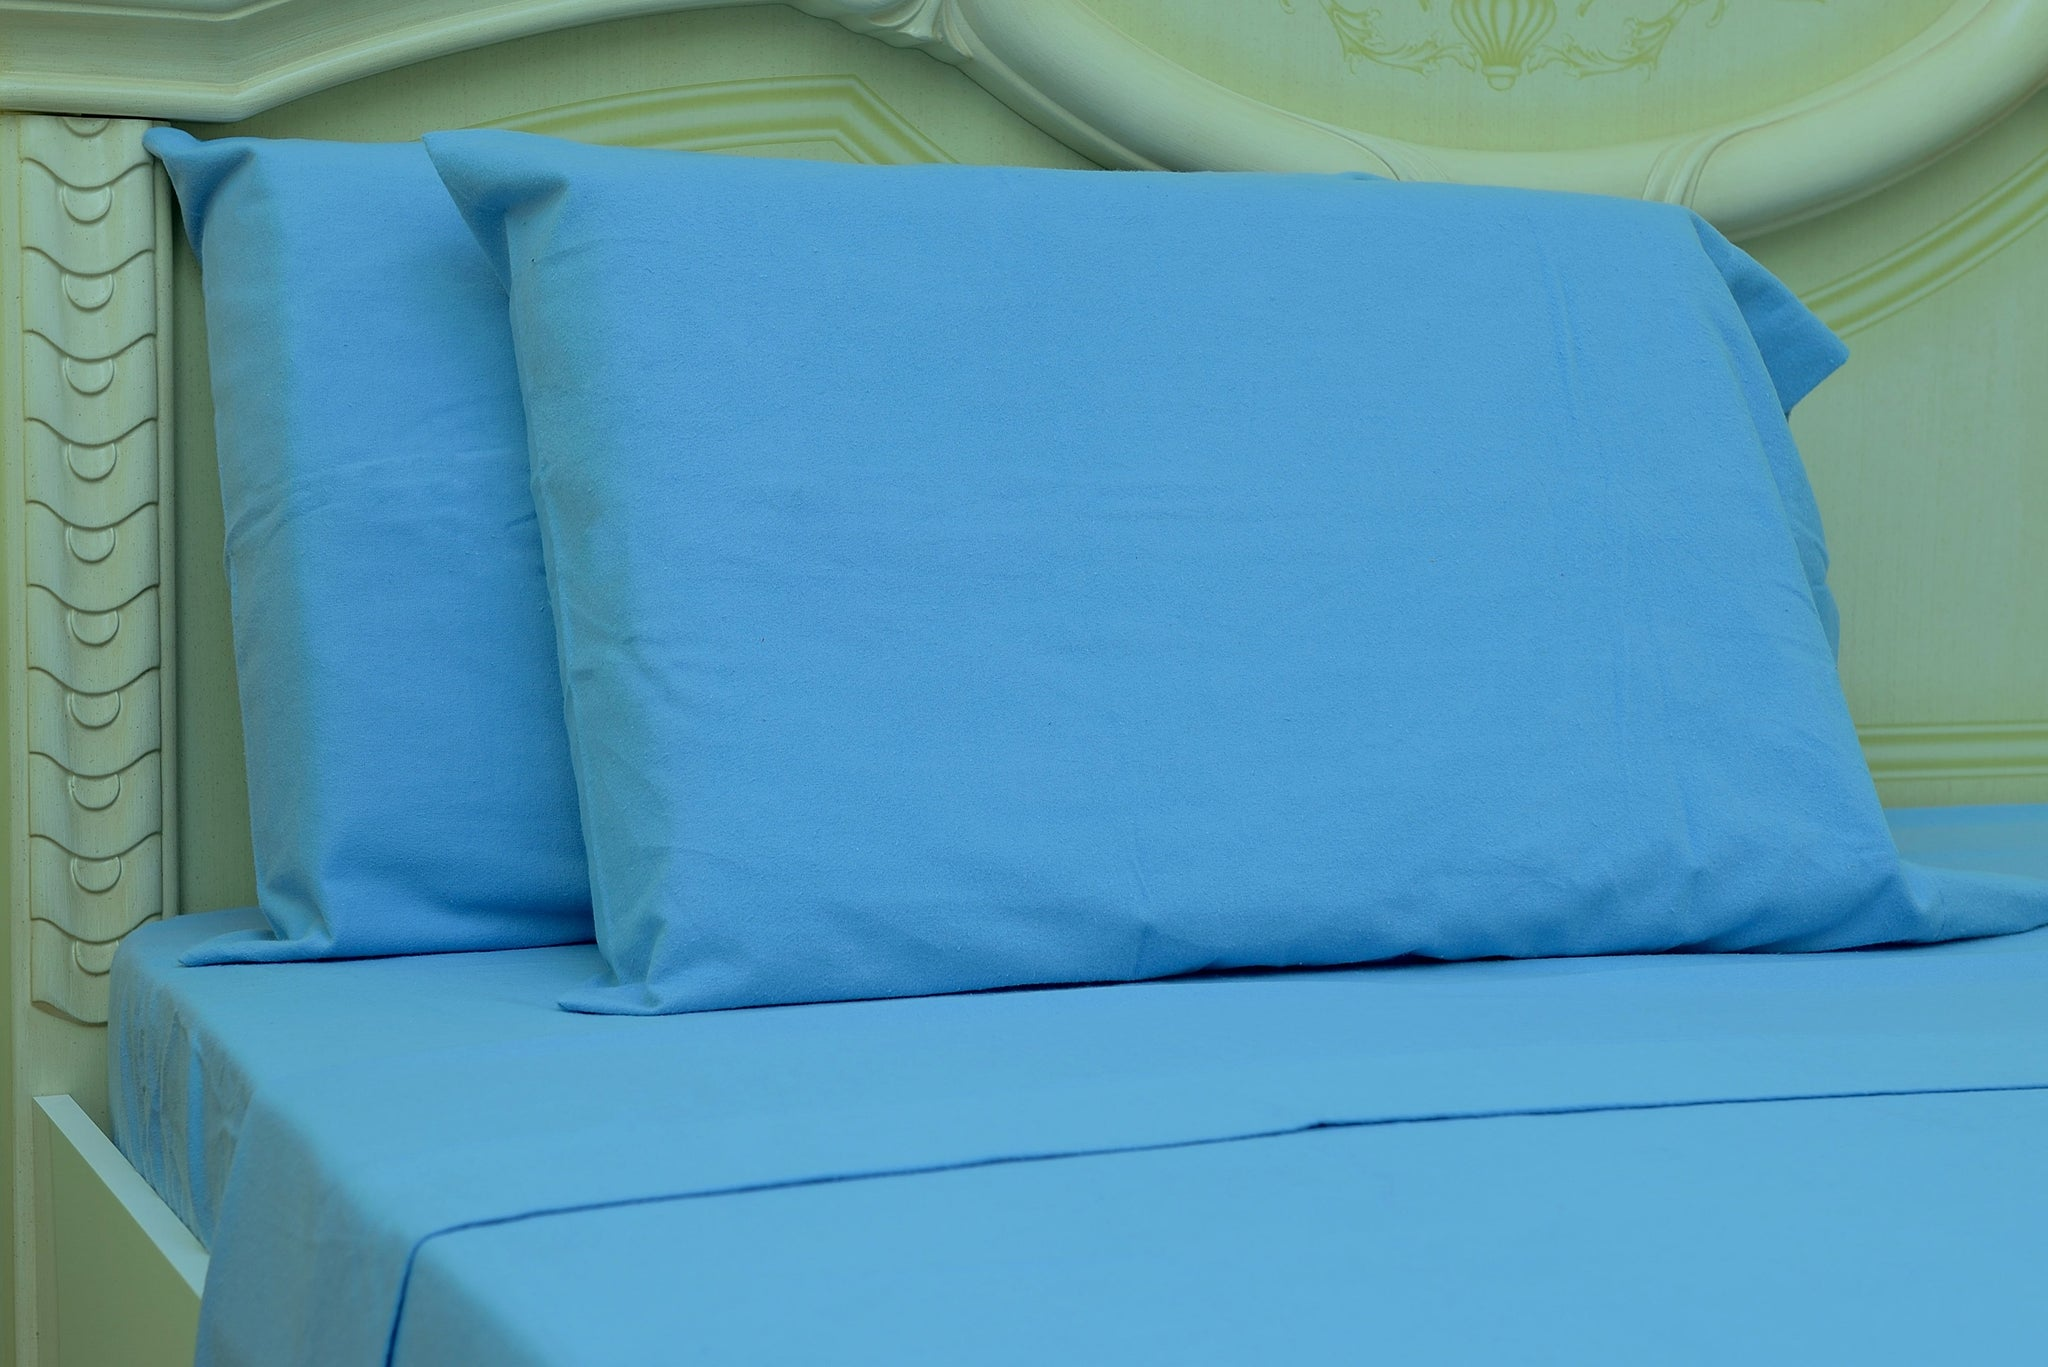 Flannel Flat Sheet - %100 Cotton, Brushed, Top Sheet - Sky Blue - Queen Size